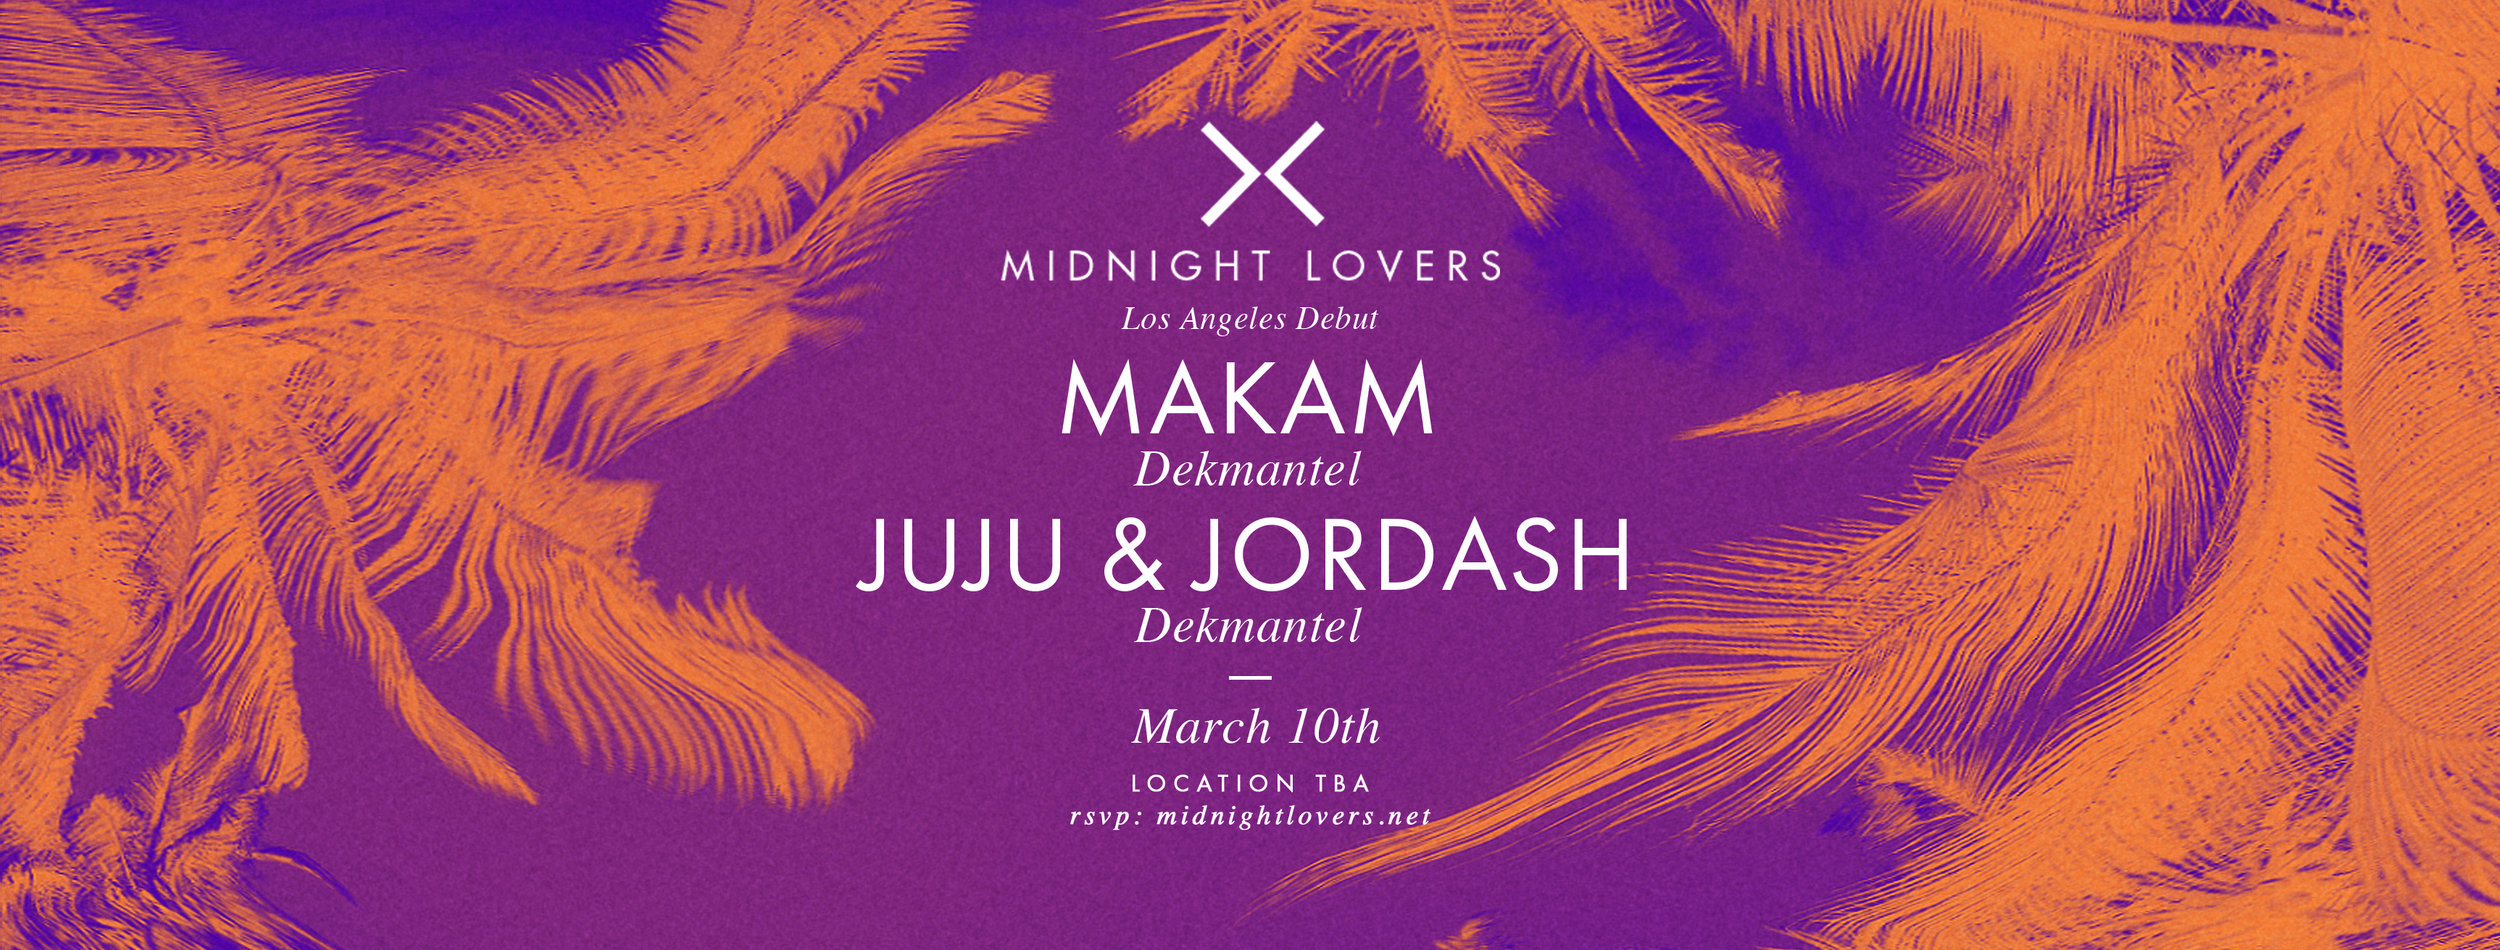 Midnight Lovers w/ Makam (Dekmantel), Juju & Jordash (Dekmantel)  Location, TBA • Saturday March 10th, 2018  •   DISCOUNTED TICKET     •